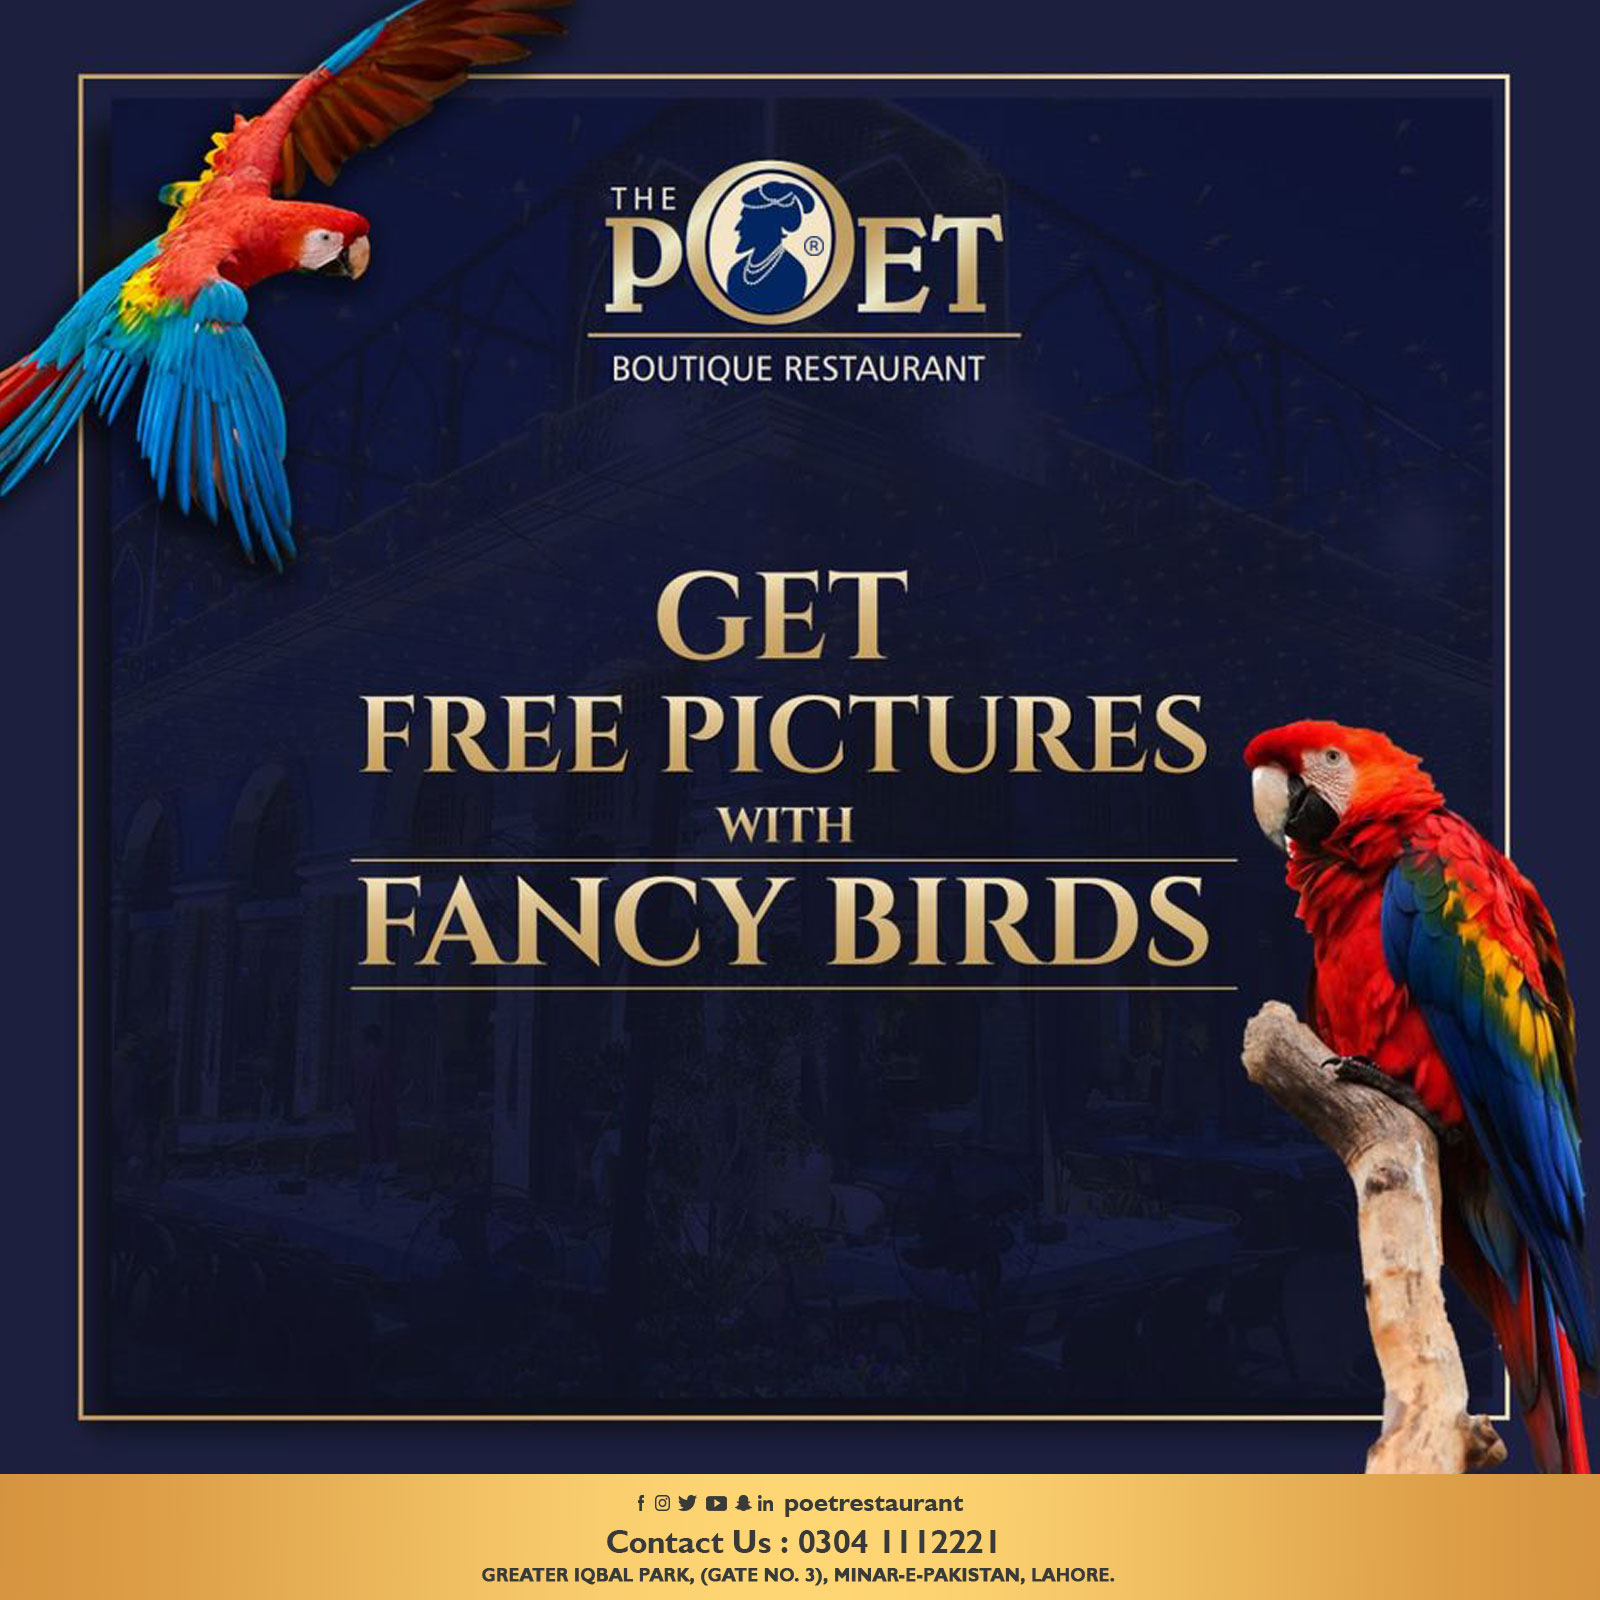 Get Free Pictures with Fancy Birds